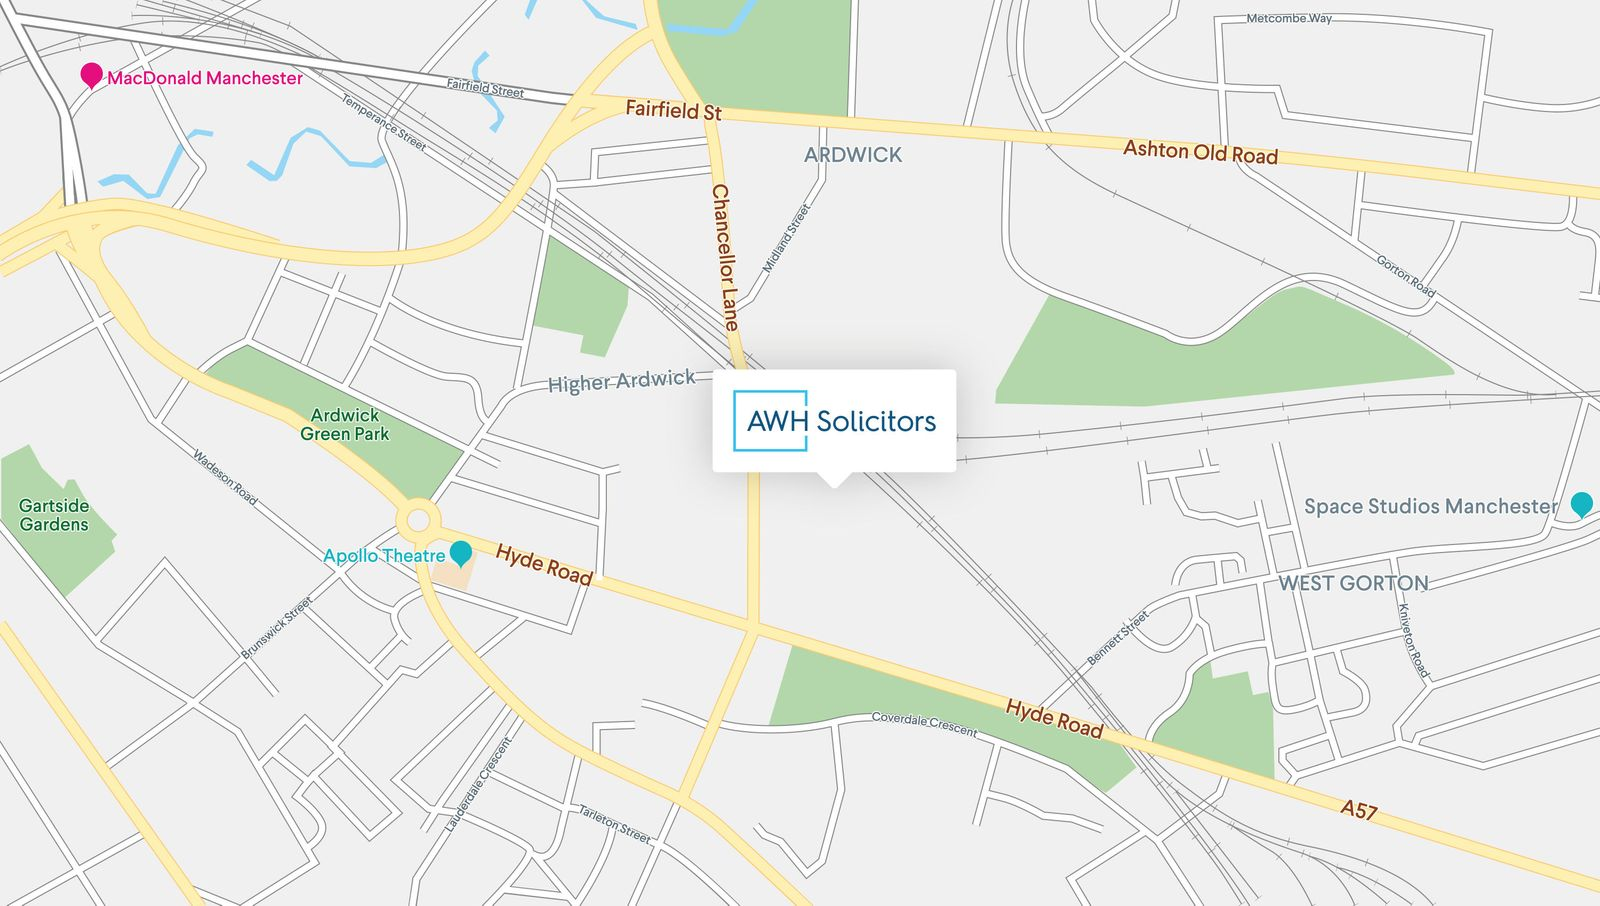 AWH Solicitors Manchester directions